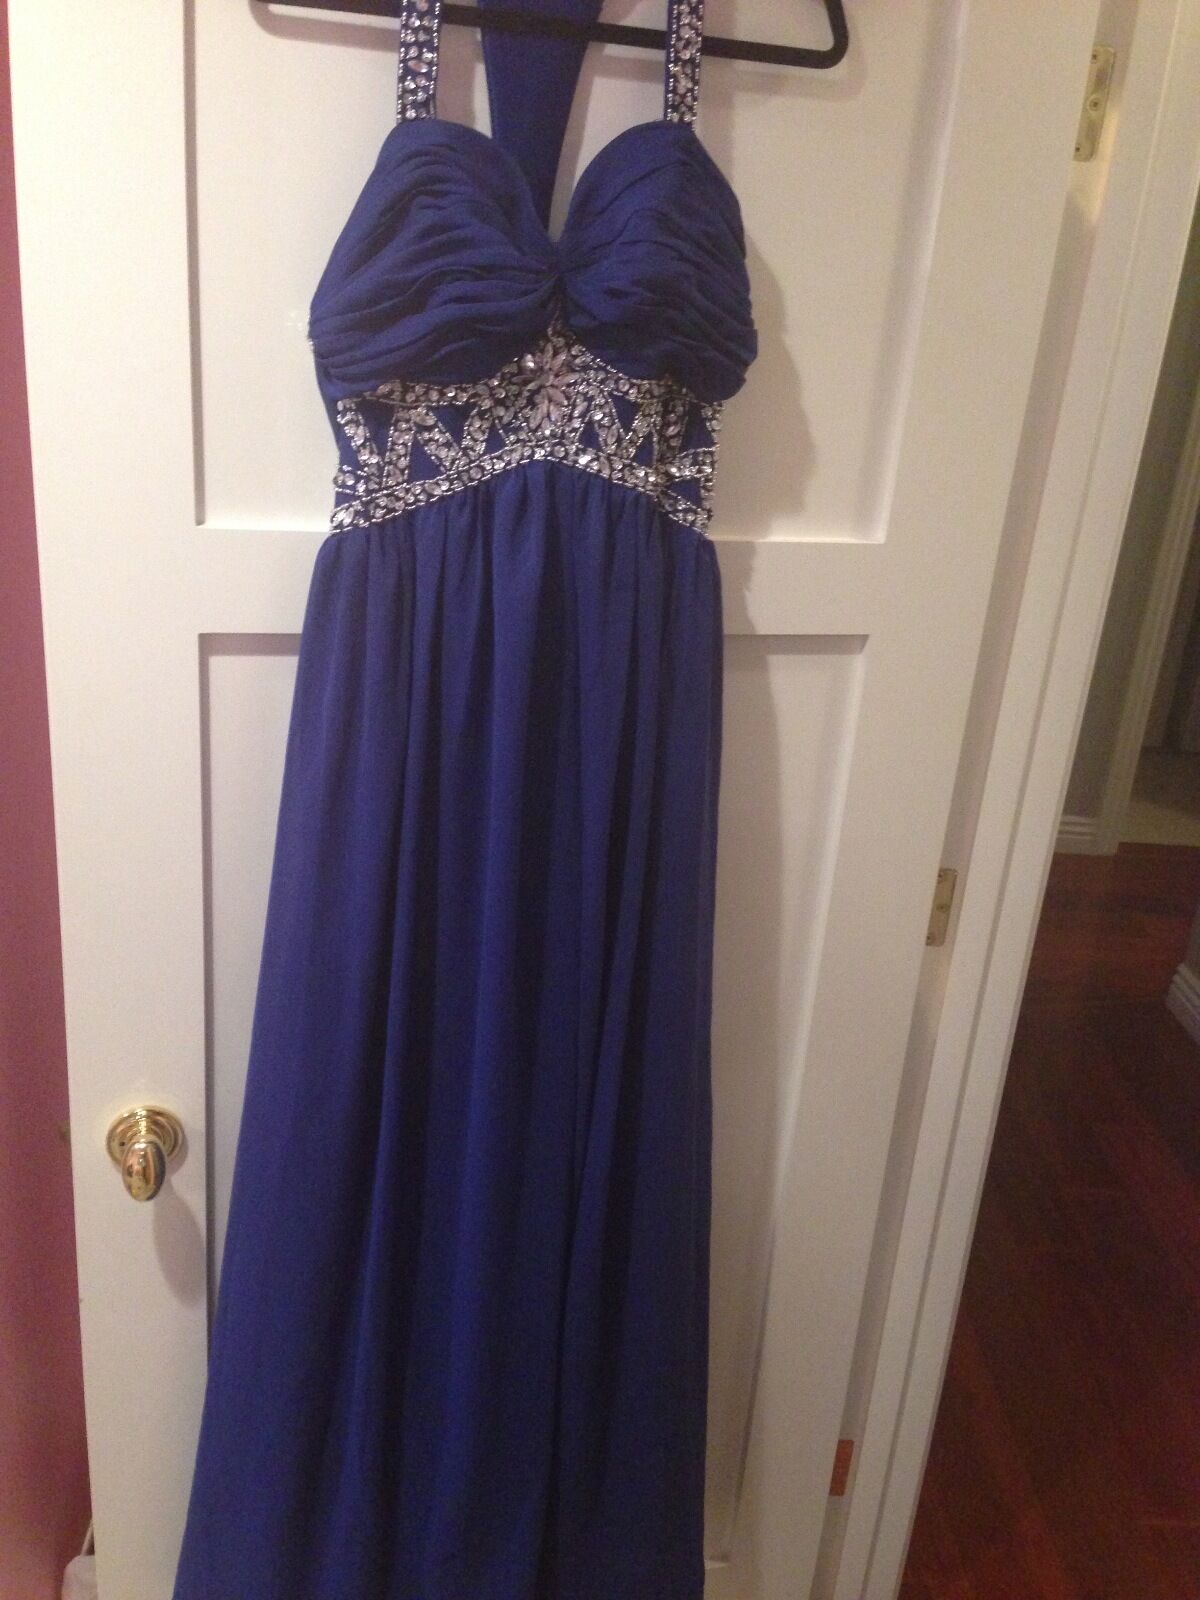 Prom Dress Bust Bust Bust 39in Hips 42in Waist 32in Hollow to Floor 61in 1b54d0